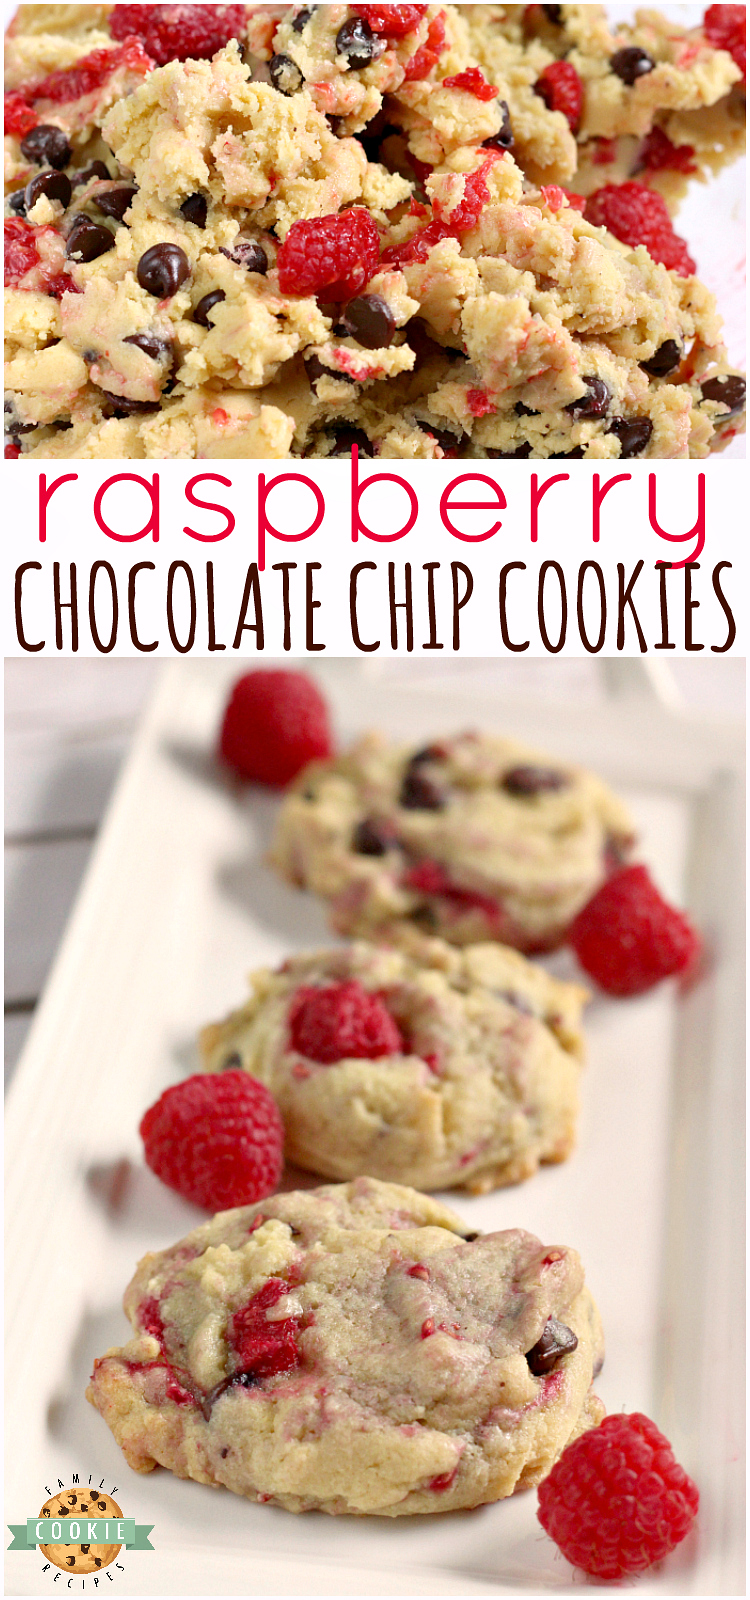 Raspberry Chocolate Chip Cookies by Family Cookie Recipes